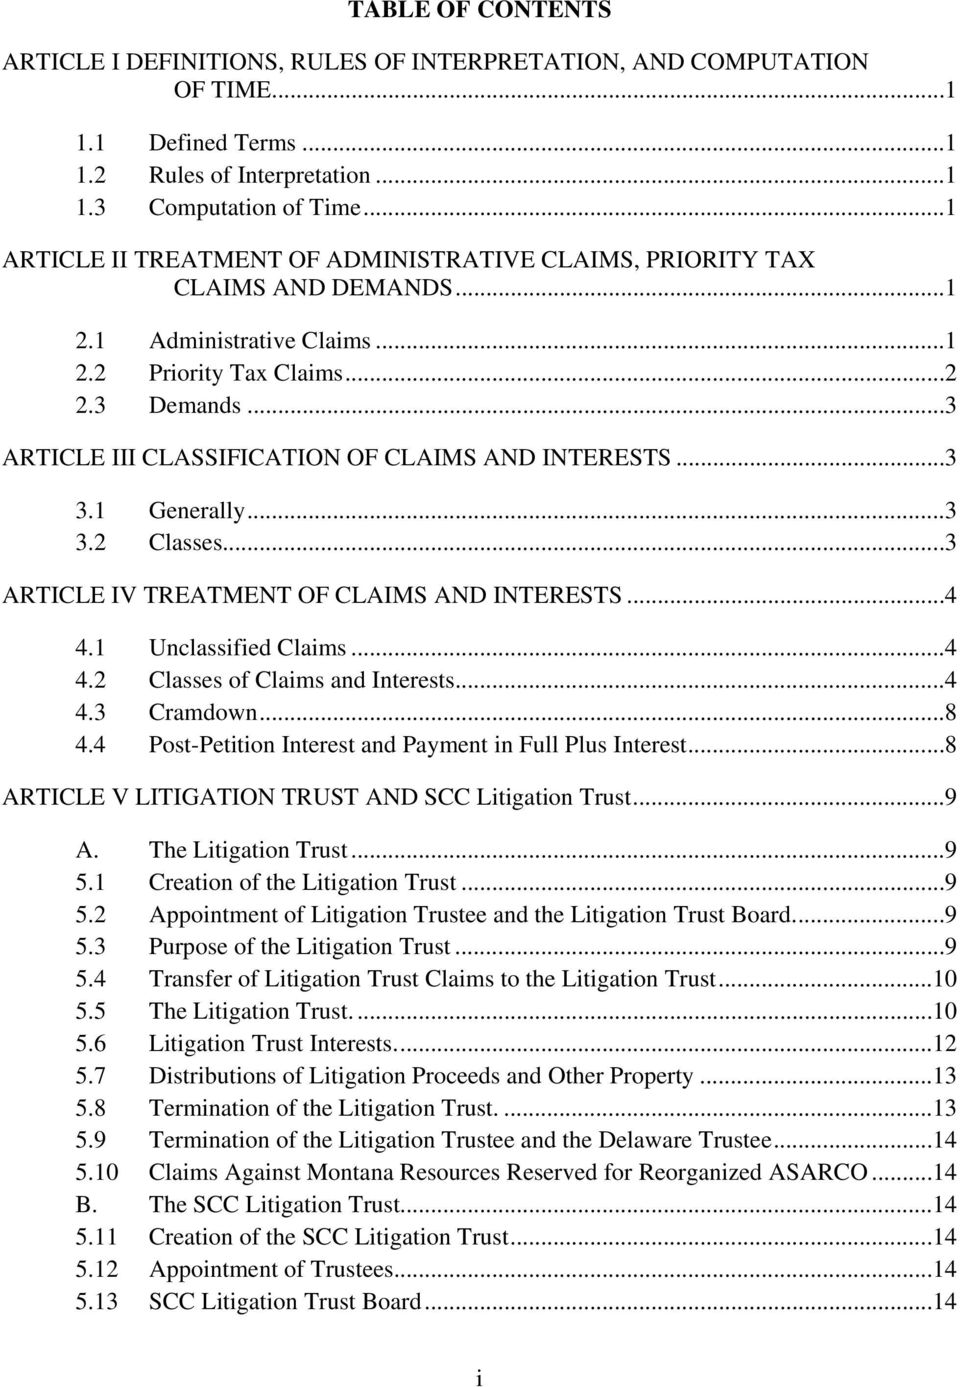 ..3 ARTICLE III CLASSIFICATION OF CLAIMS AND INTERESTS...3 3.1 Generally...3 3.2 Classes...3 ARTICLE IV TREATMENT OF CLAIMS AND INTERESTS...4 4.1 Unclassified Claims...4 4.2 Classes of Claims and Interests.